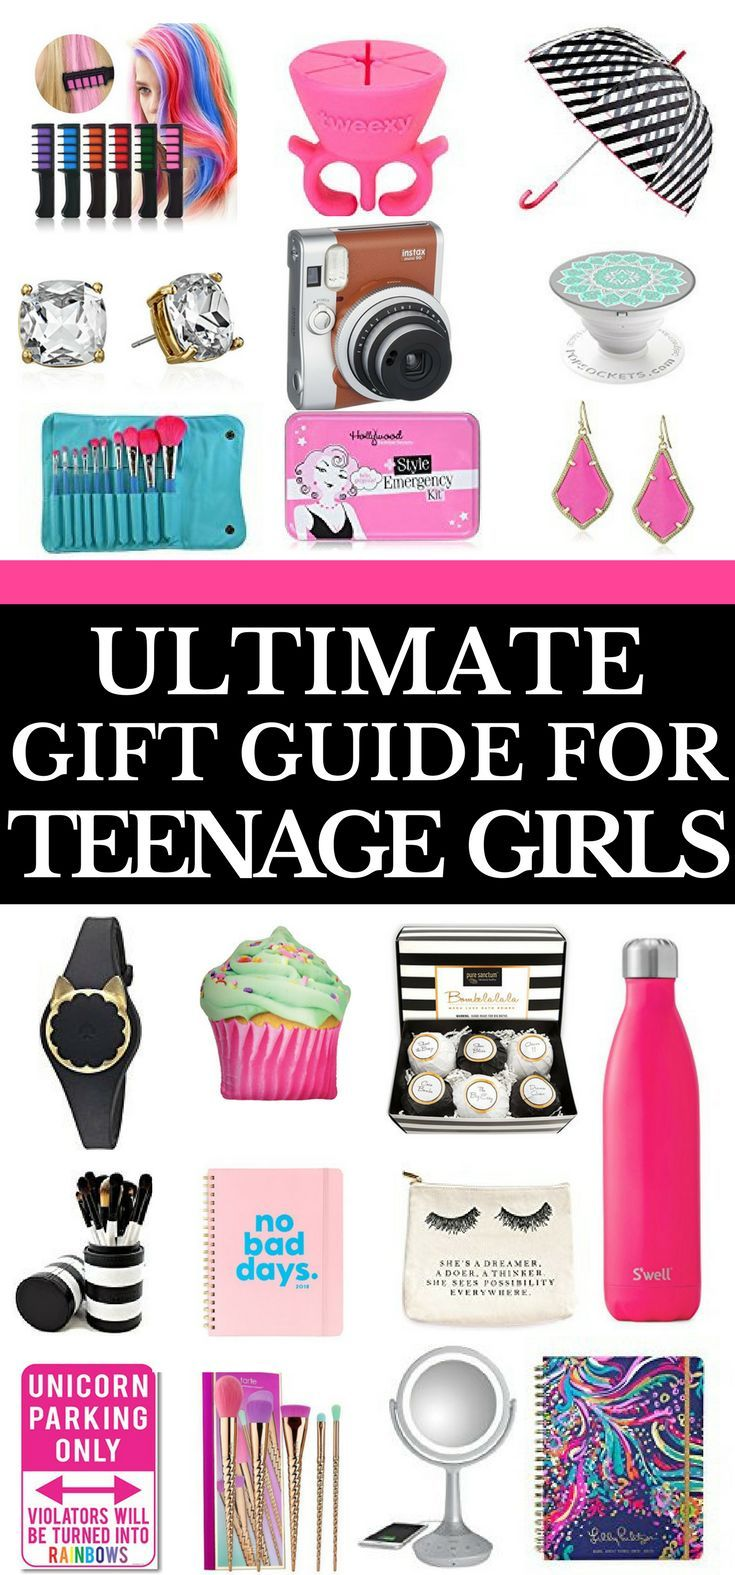 If you're looking for gifts for teens then you need the ultimate gift guide for teenage girls! Over 127 popular gift ideas that teenagers want for Christmas, birthday, or just because you want to give a unique gift! The ultimate gift guide includes gifts for teens for all budgets! You'll find everything from cheap to expensive on the ultimate gift guide for teenage girls! Click to read or pin for later! #gifts#giftidea  #teenagers #giftguide